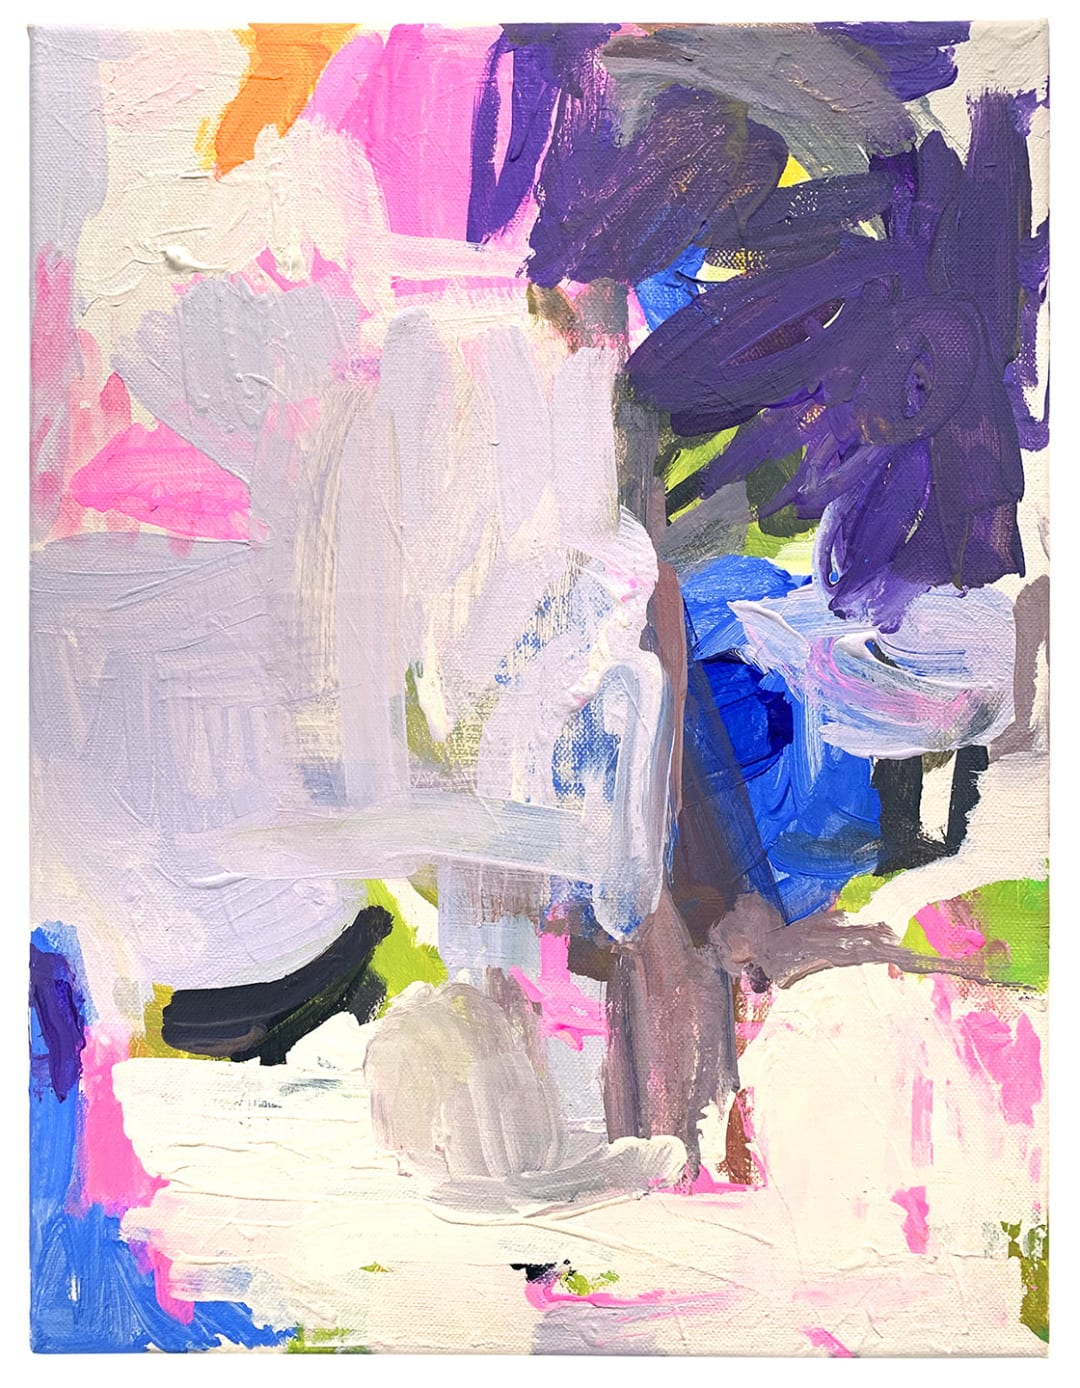 Yvonne Robert- Small Untitled Sept 21/2, 15.5 x 11.5 inches, 2021